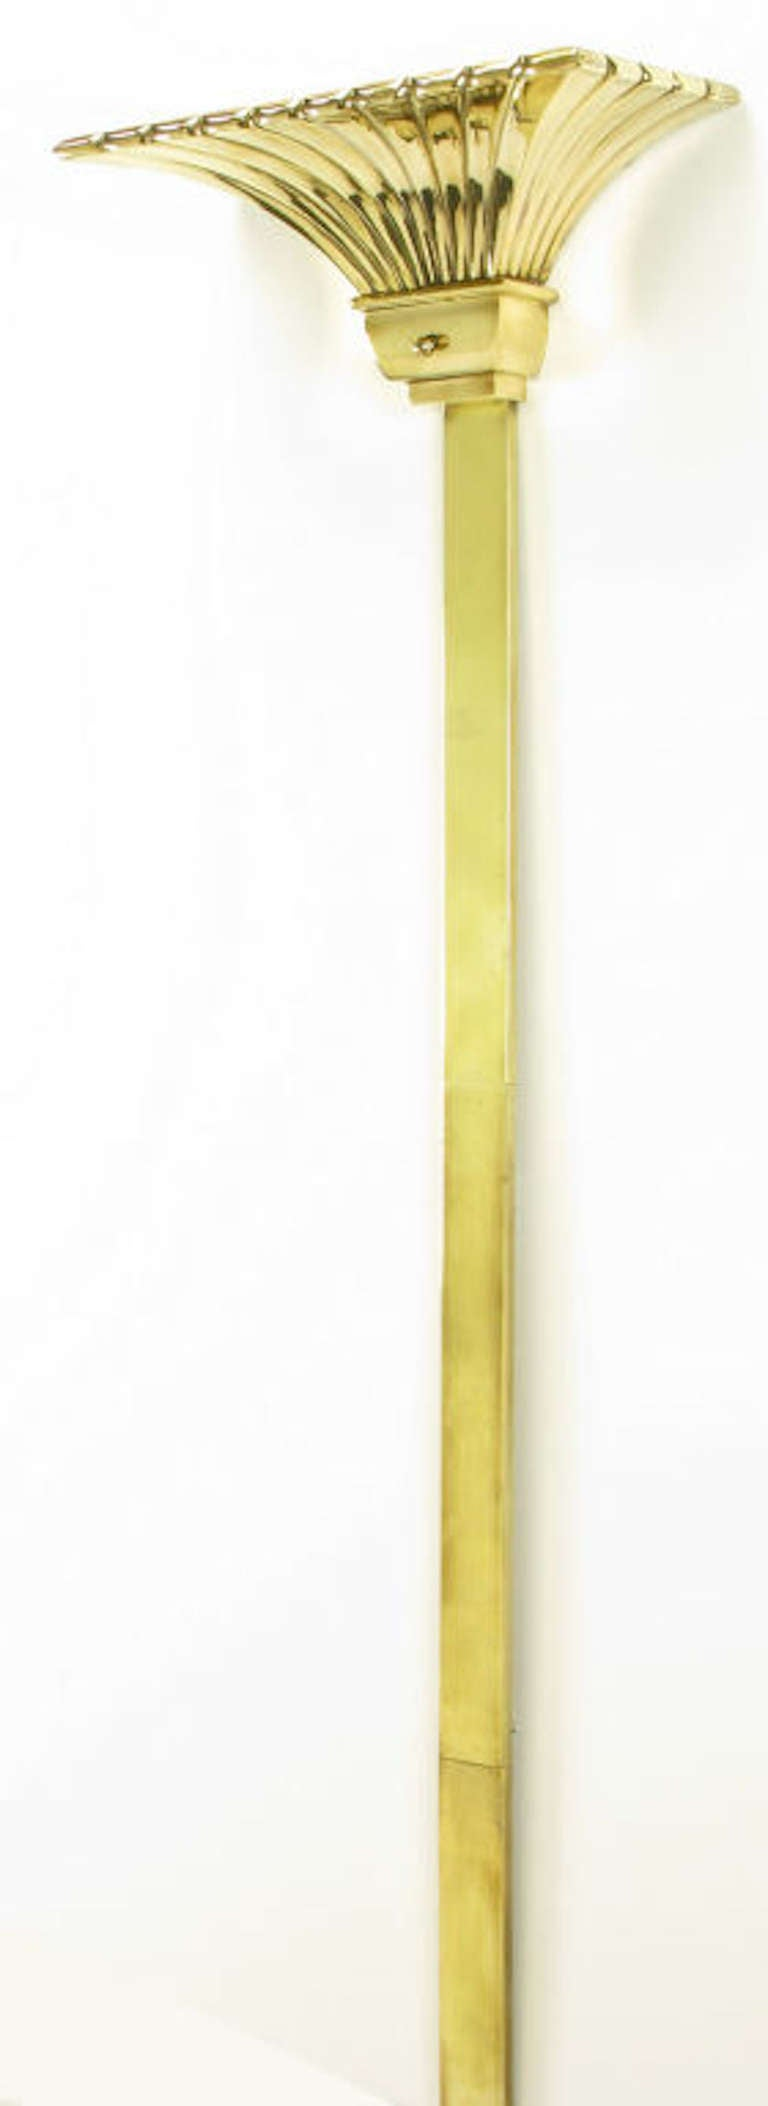 Wall Torchiere Lamps : Chapman Lighting Brass Empire Style Wall Mounted Torchiere For Sale at 1stdibs